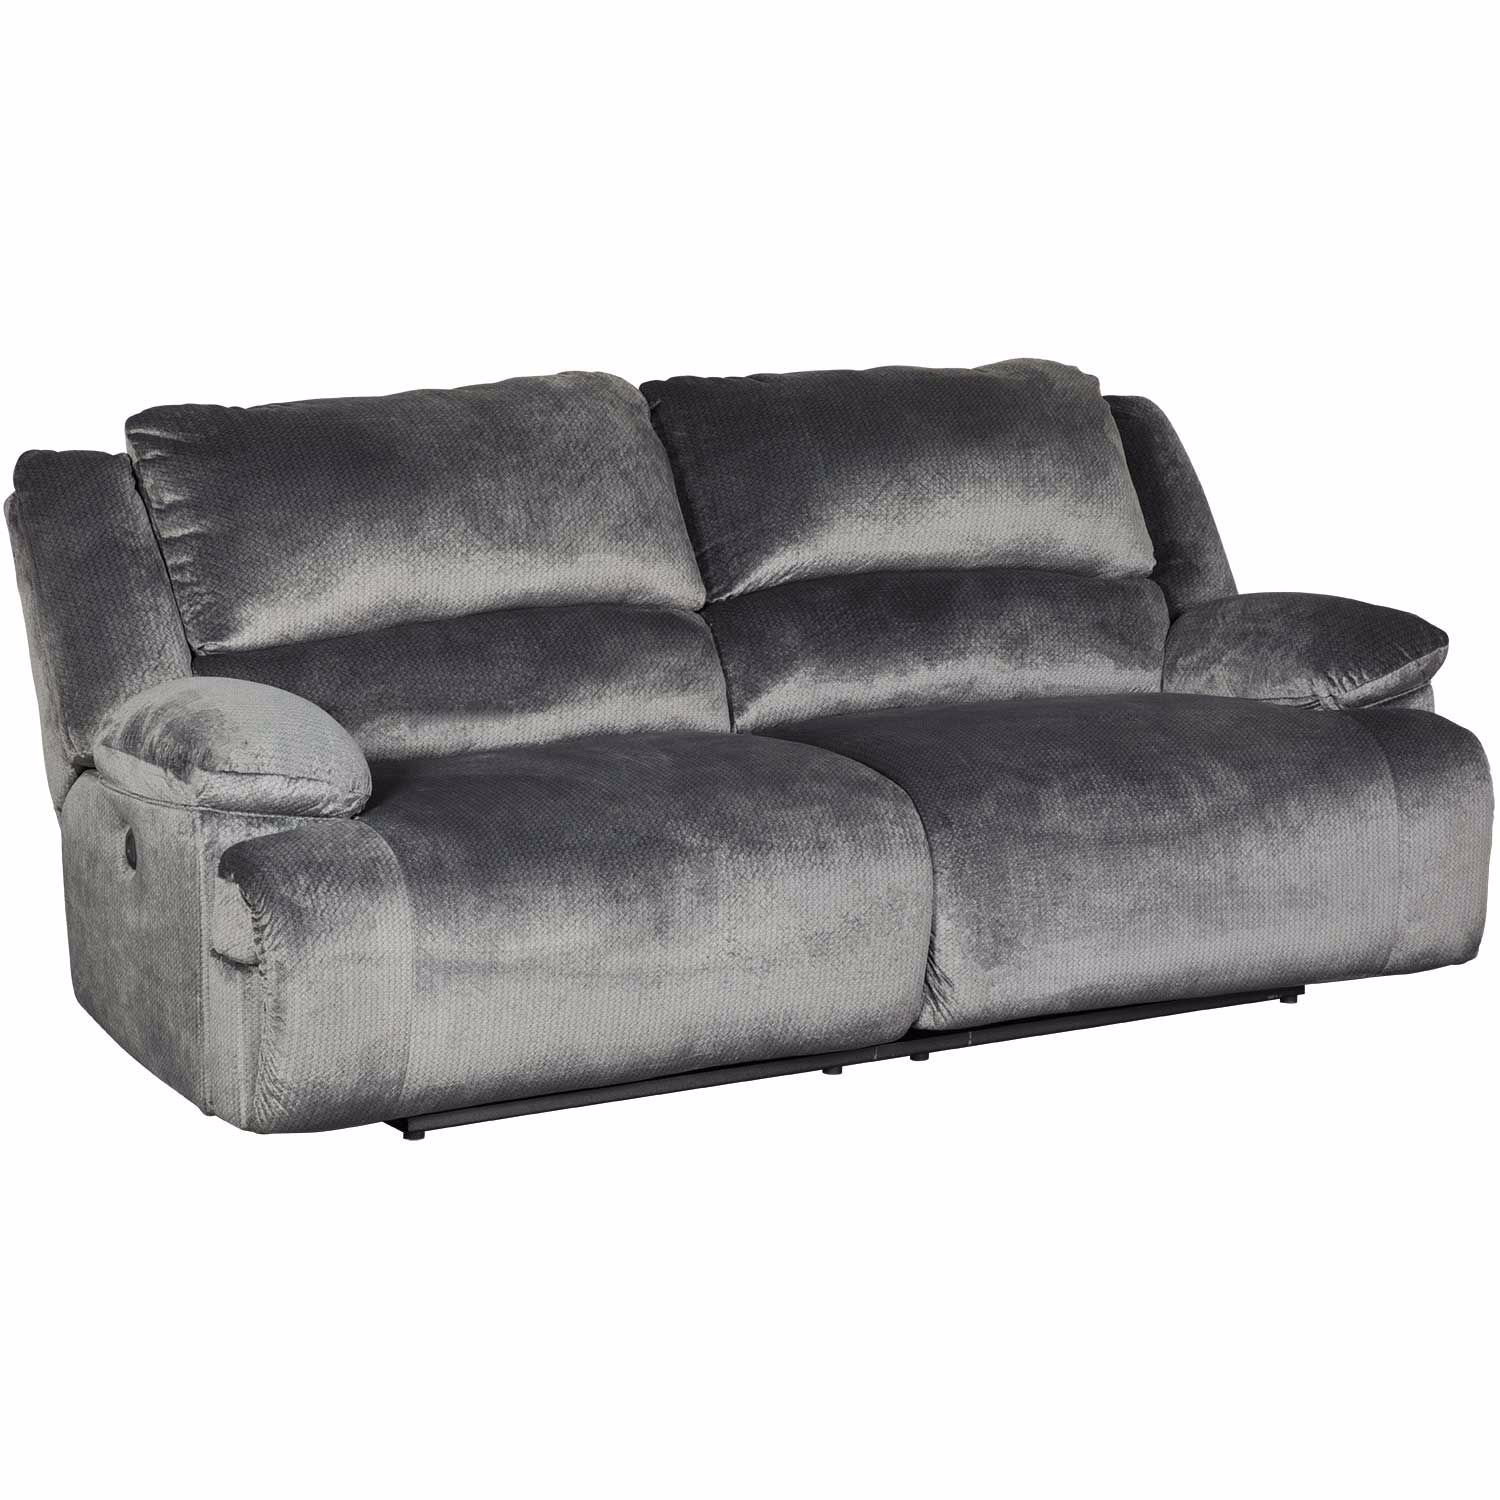 Picture of Charcoal Reclining Sofa